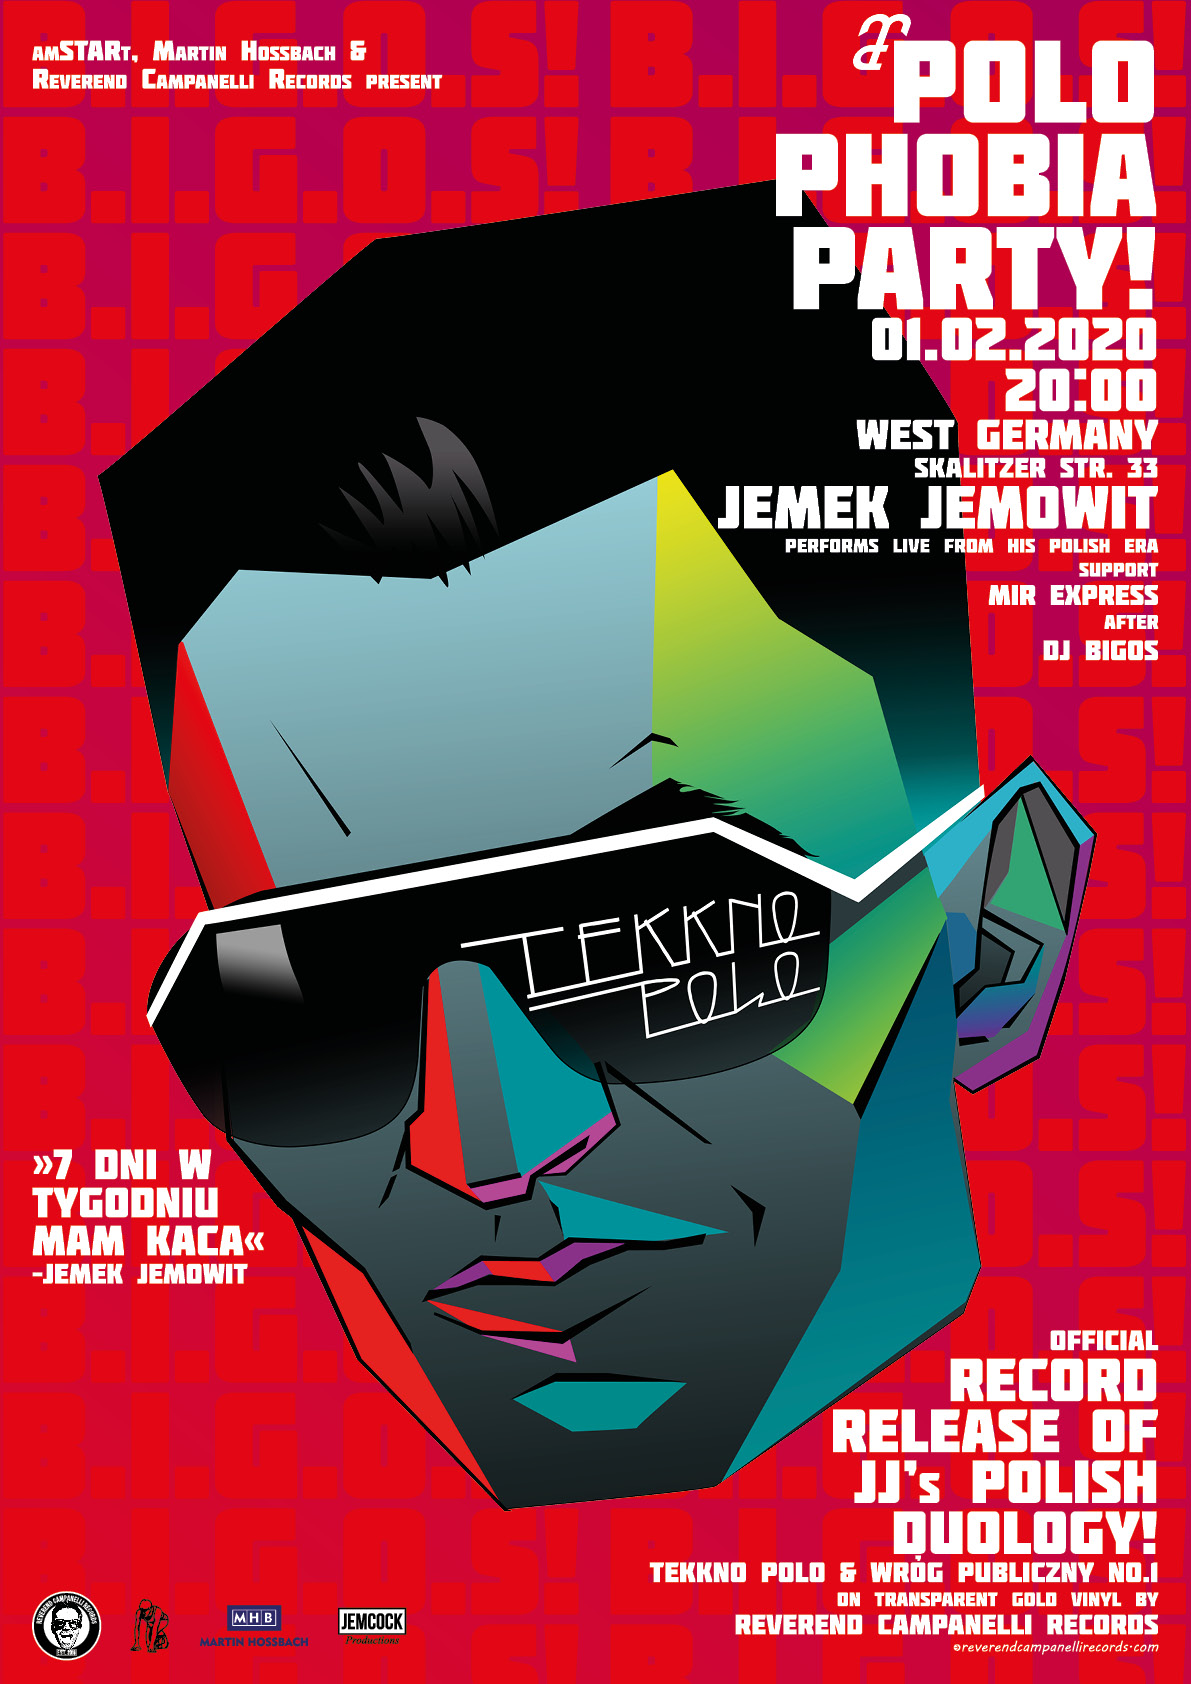 Jemek Jemowit's Polophobia Party and Record Release